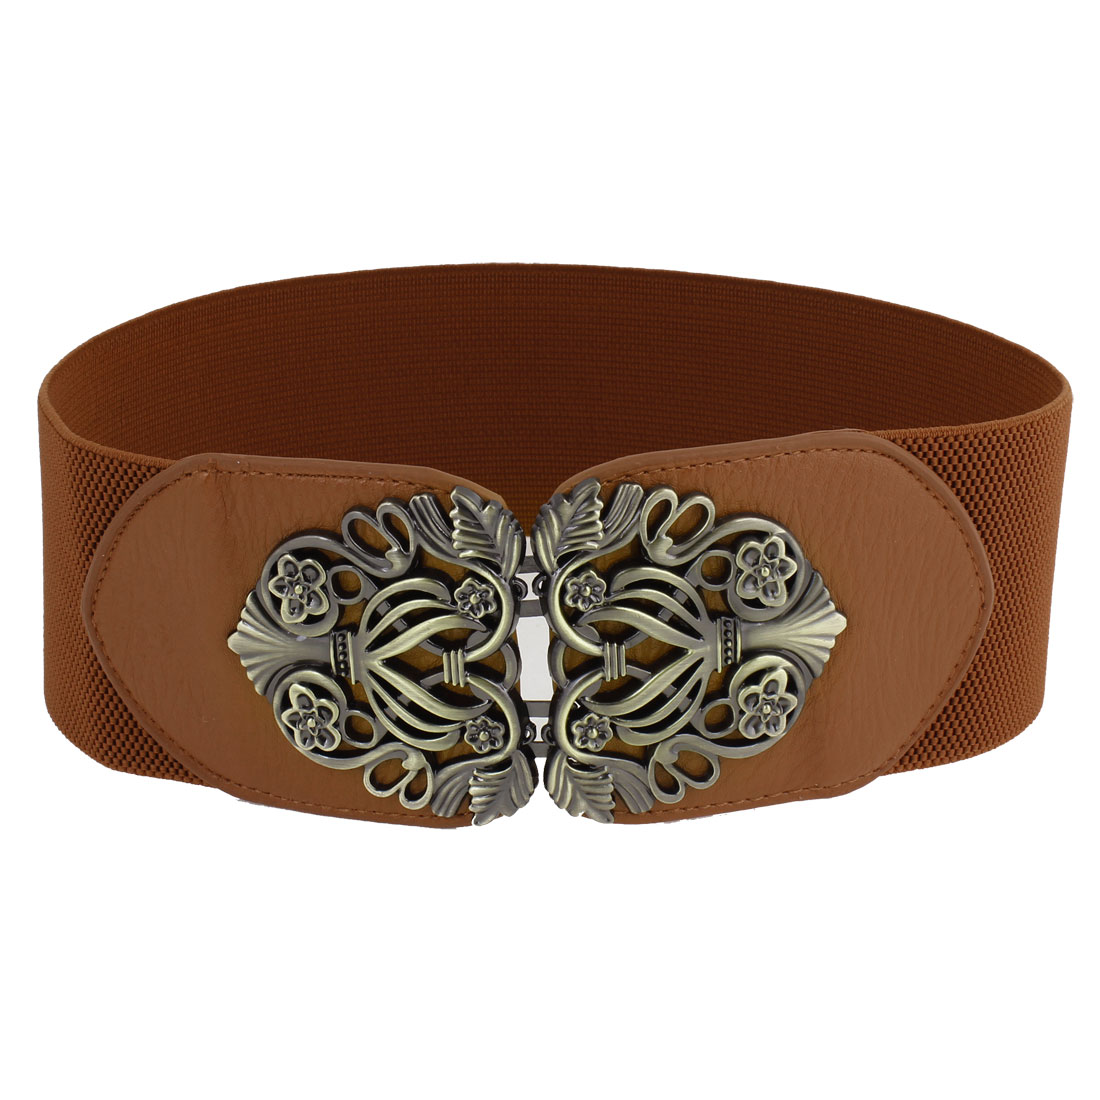 Lady-Retro-Style-Interlocking-Buckle-Faux-Leather-Cinch-Waist-Belt-Brown